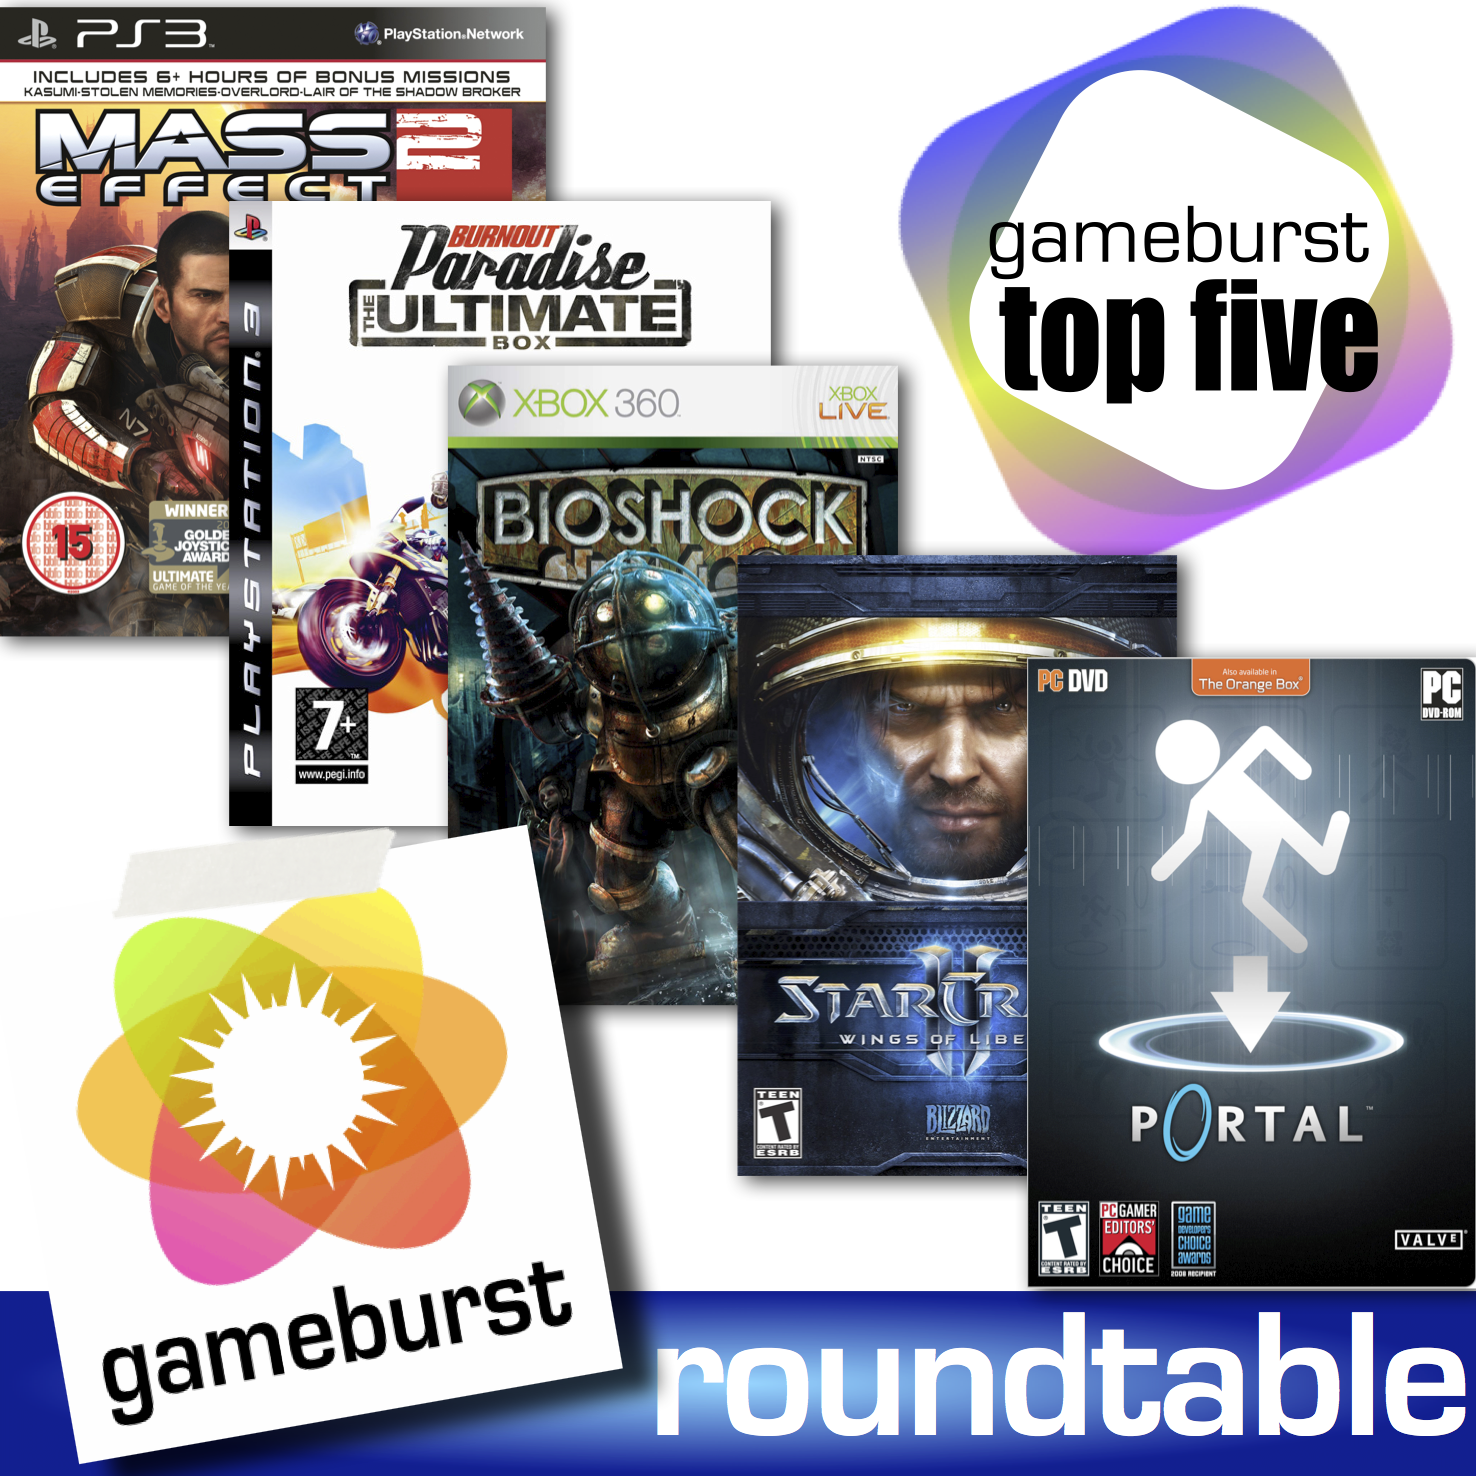 GameBurst Roundtable - Top 5 Games of this Generation